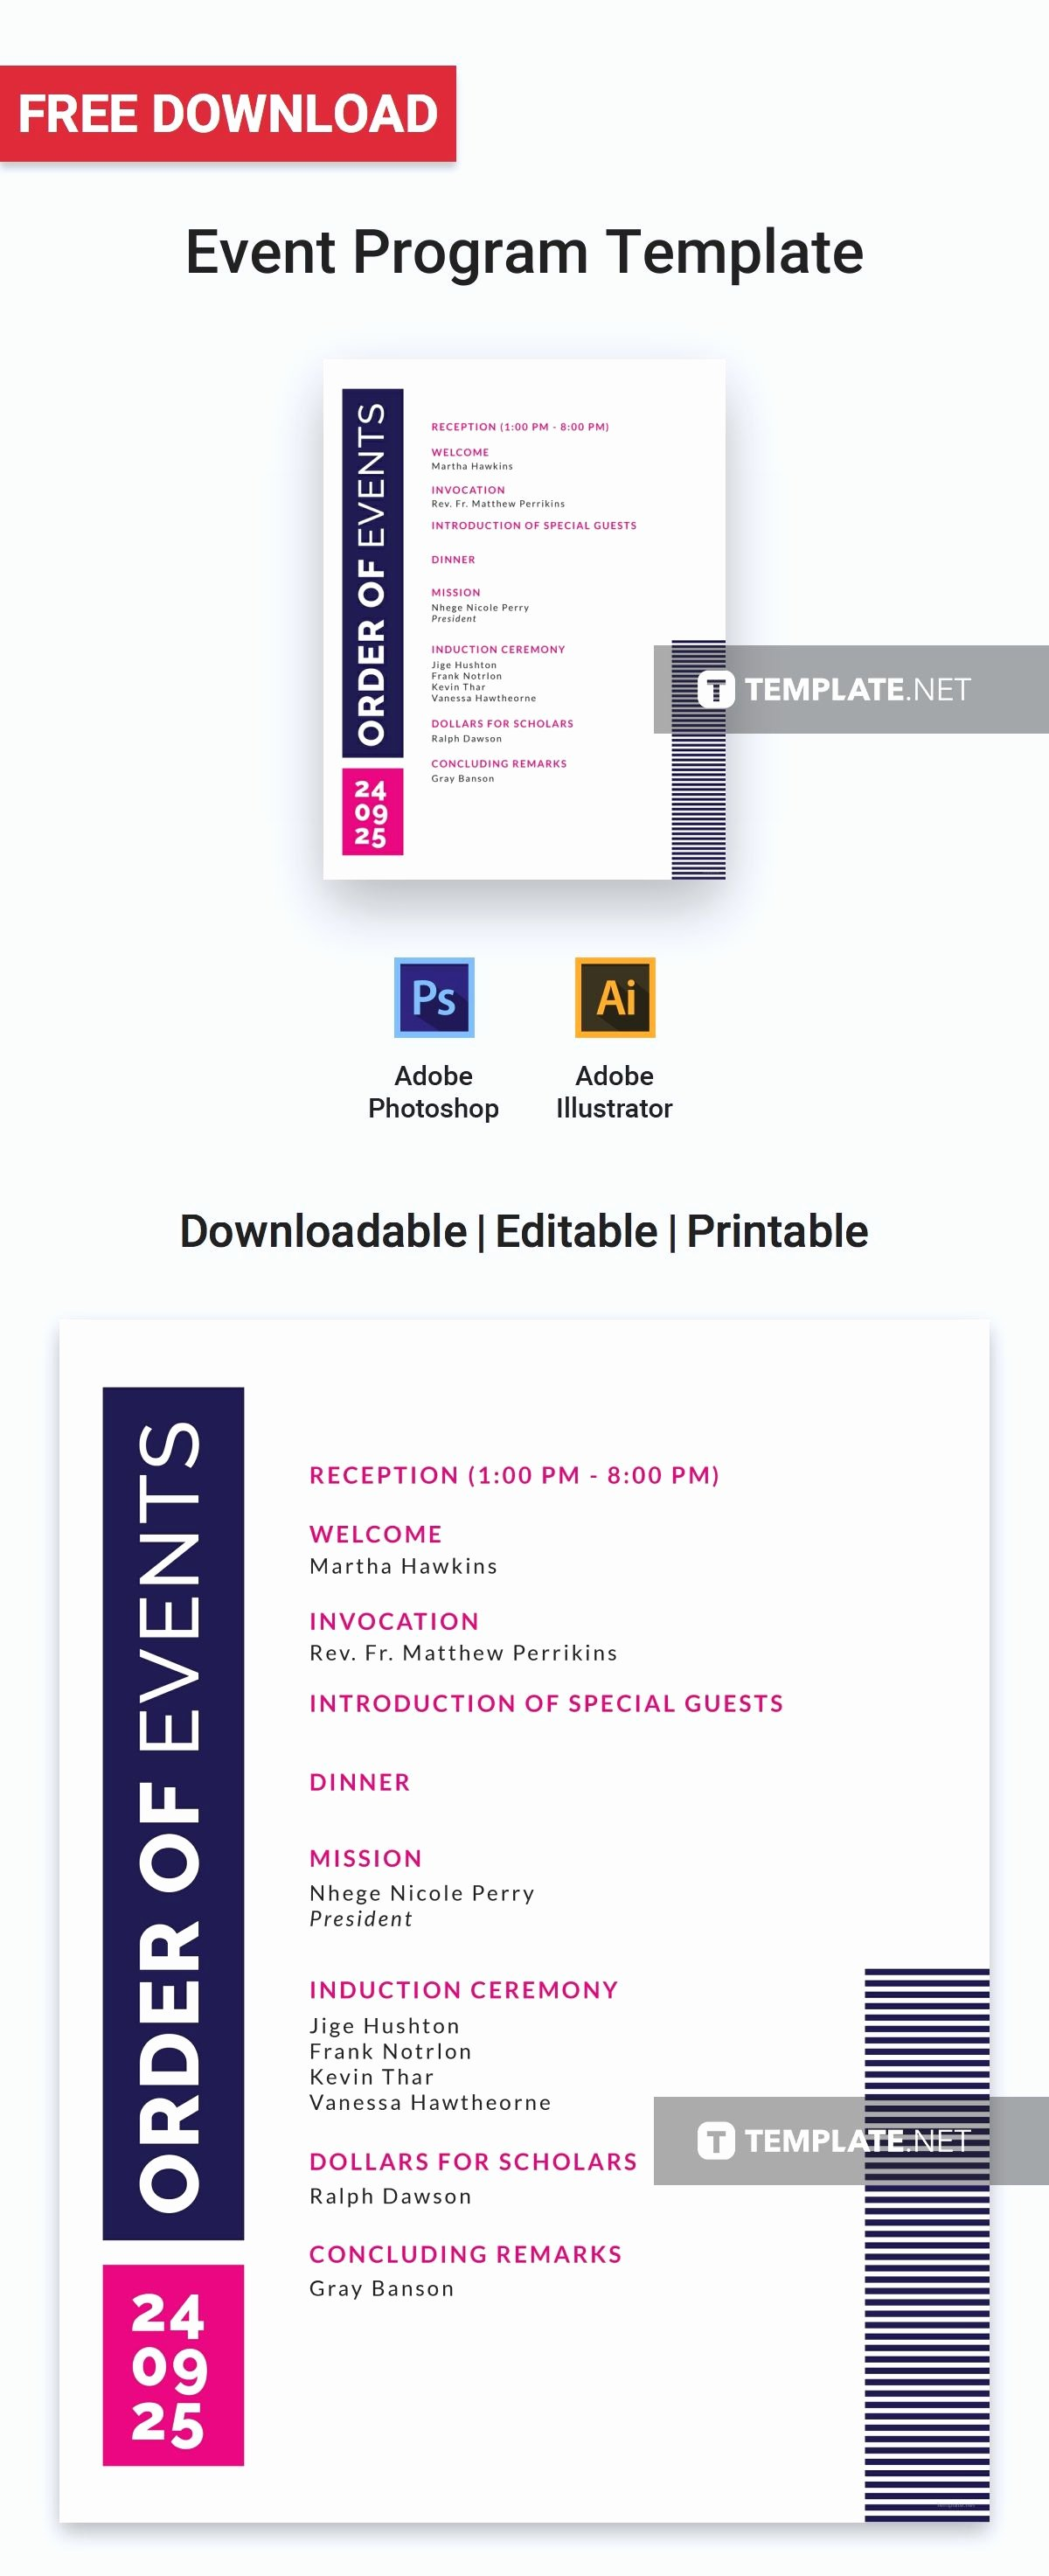 Free event Program Templates Awesome Free event Program Invitation